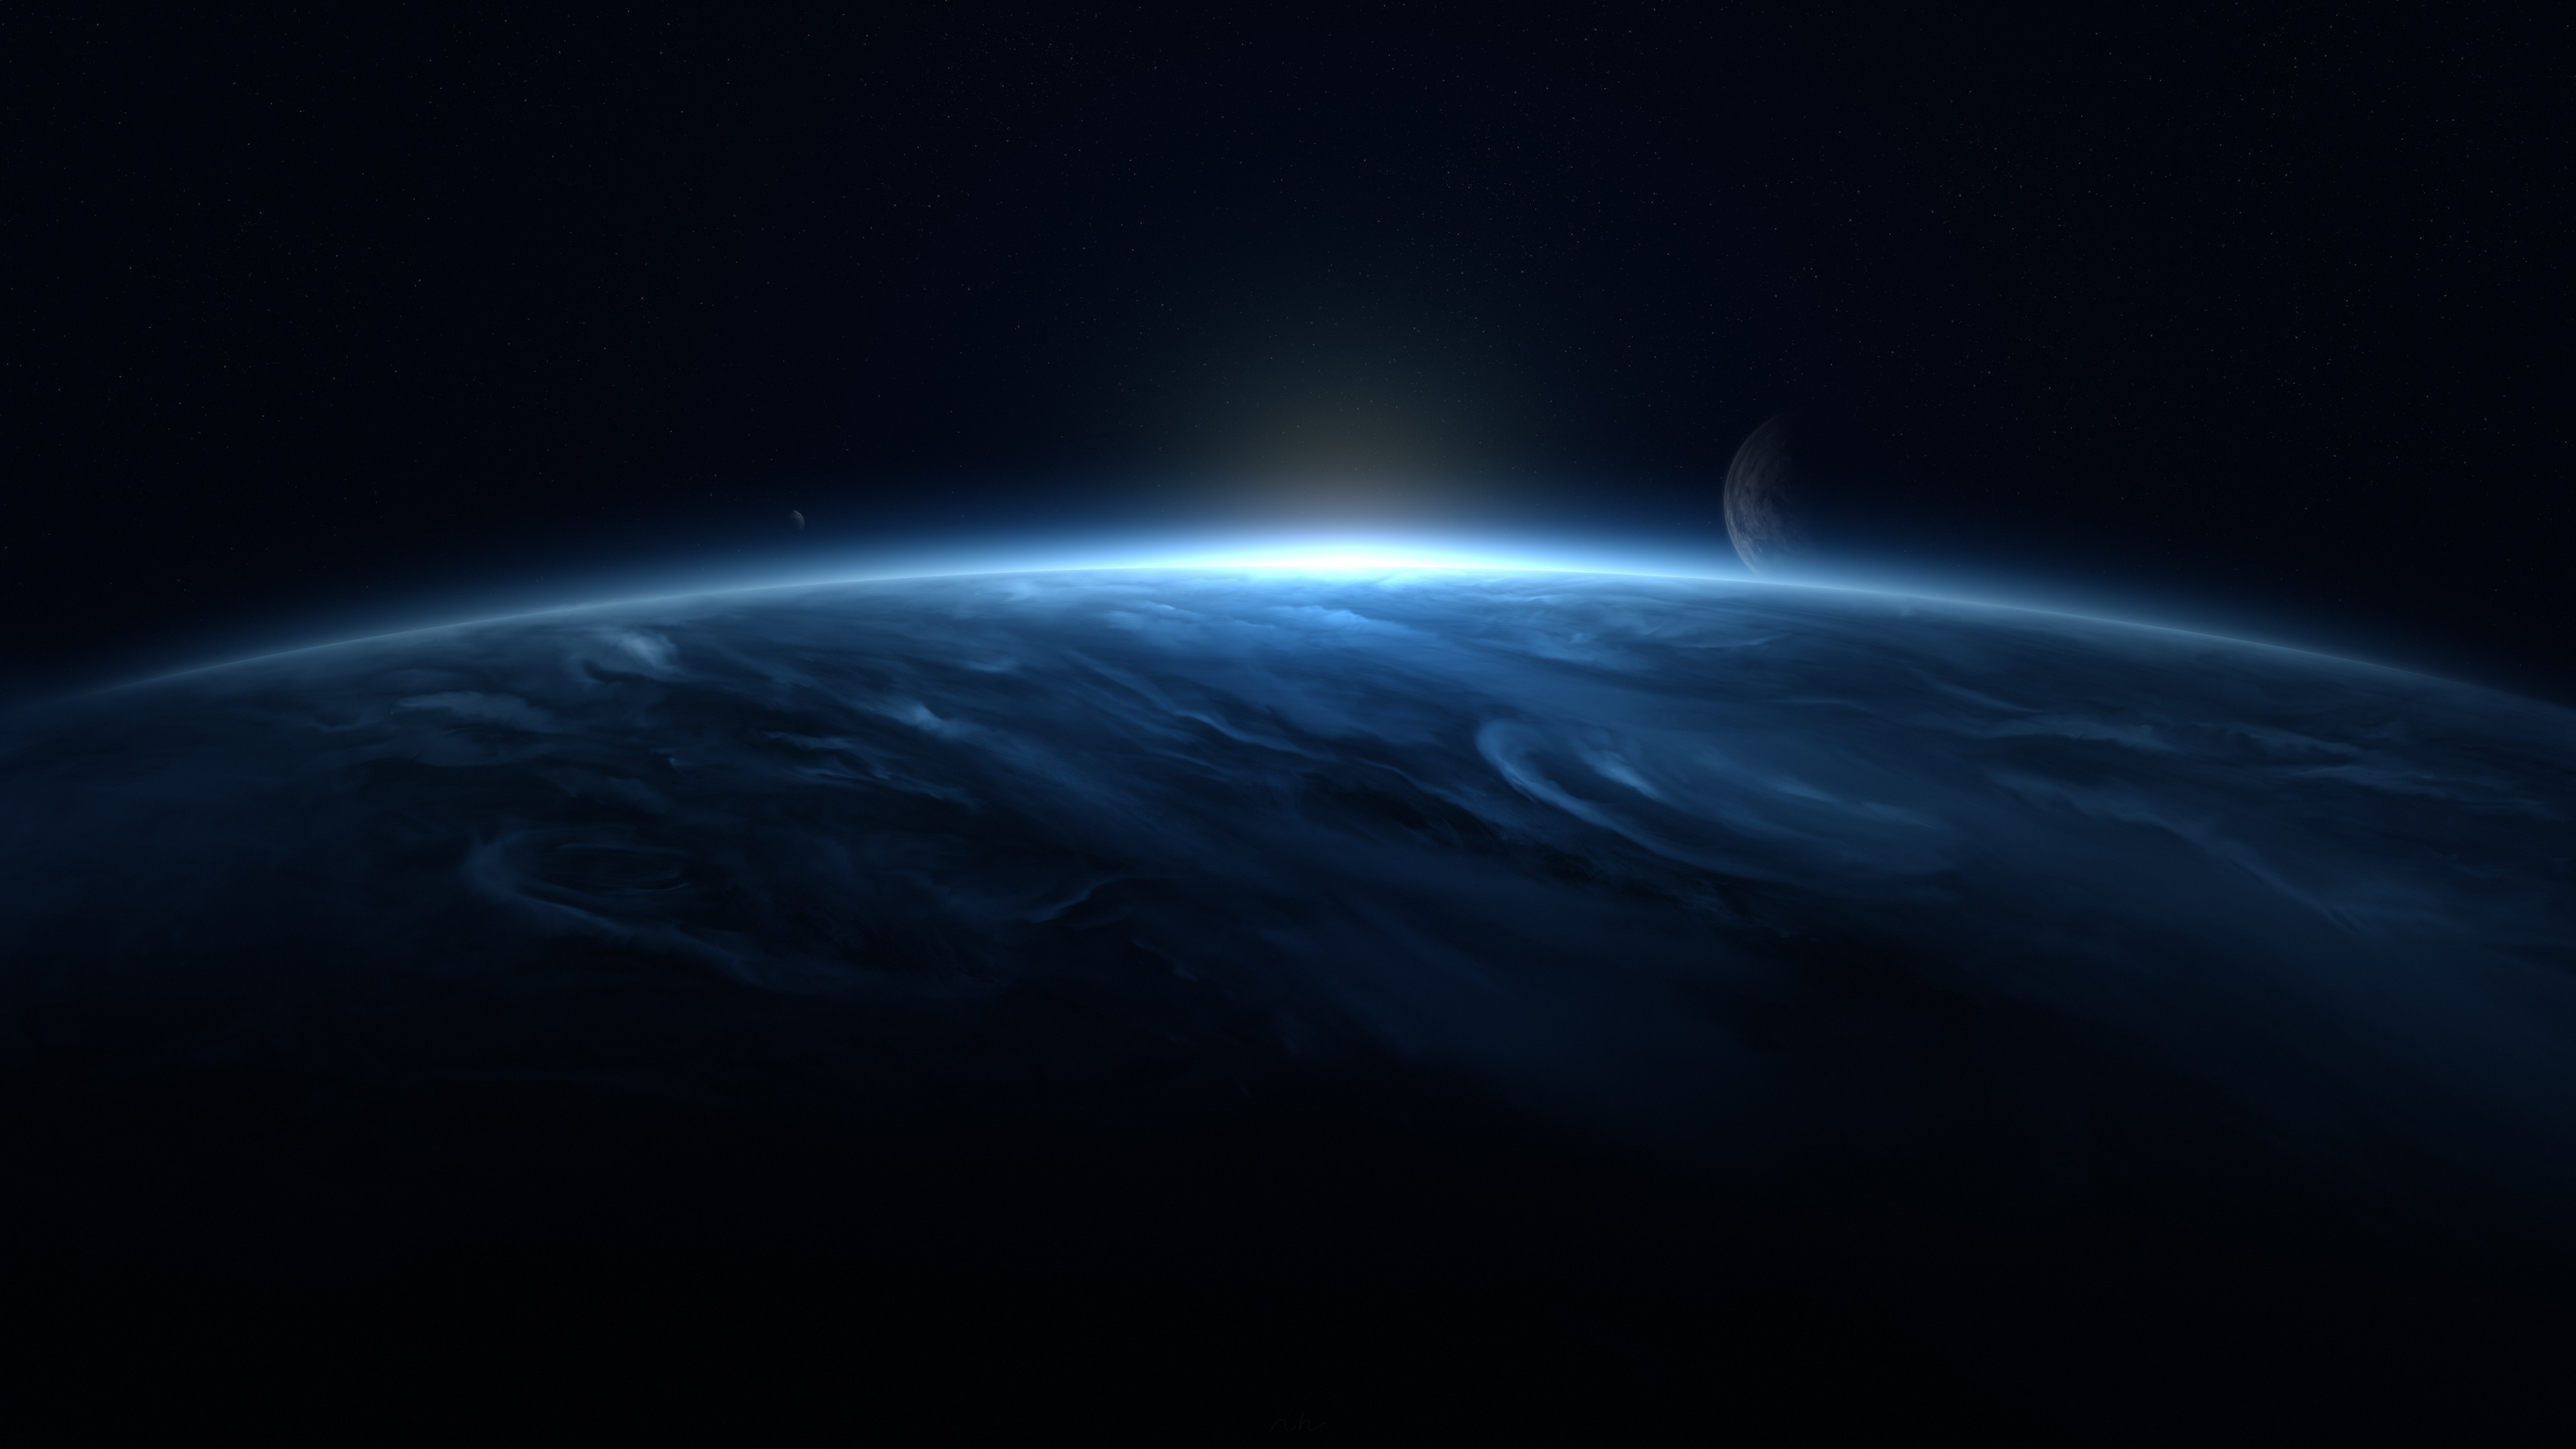 clouds planet moon flares stars science fiction digital art 1546278888 - Clouds Planet Moon Flares Stars Science Fiction Digital Art - stars wallpapers, planet wallpapers, moon wallpapers, hd-wallpapers, digital universe wallpapers, digital art wallpapers, clouds wallpapers, 4k-wallpapers